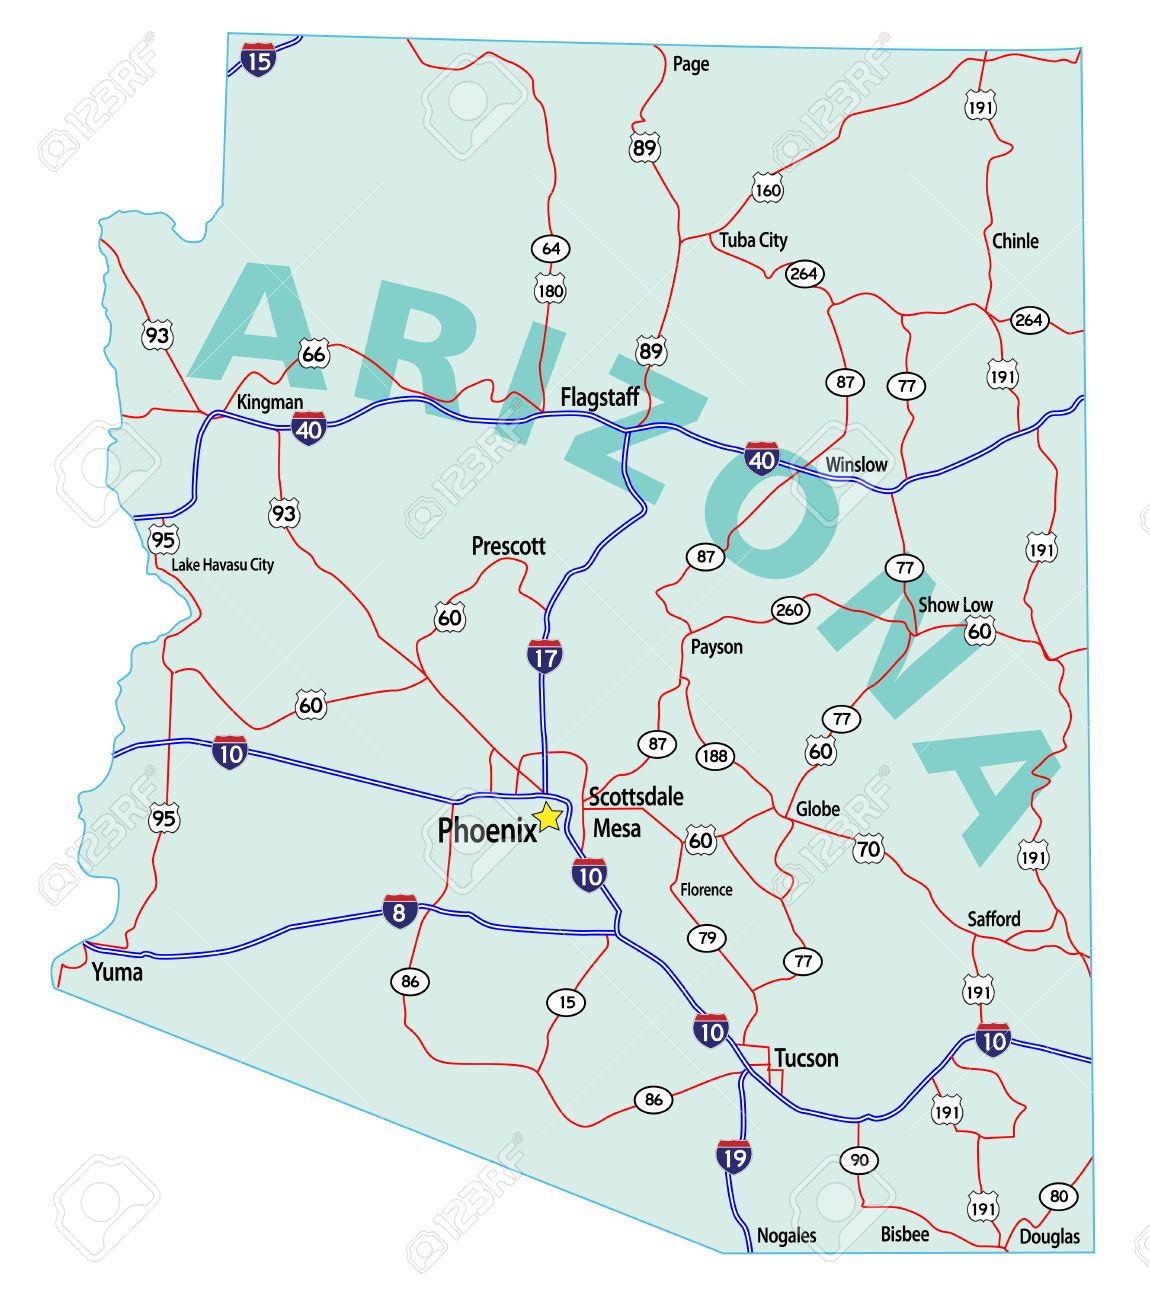 Arizona State Road Map With Interstates US Highways And State - Arizona map us